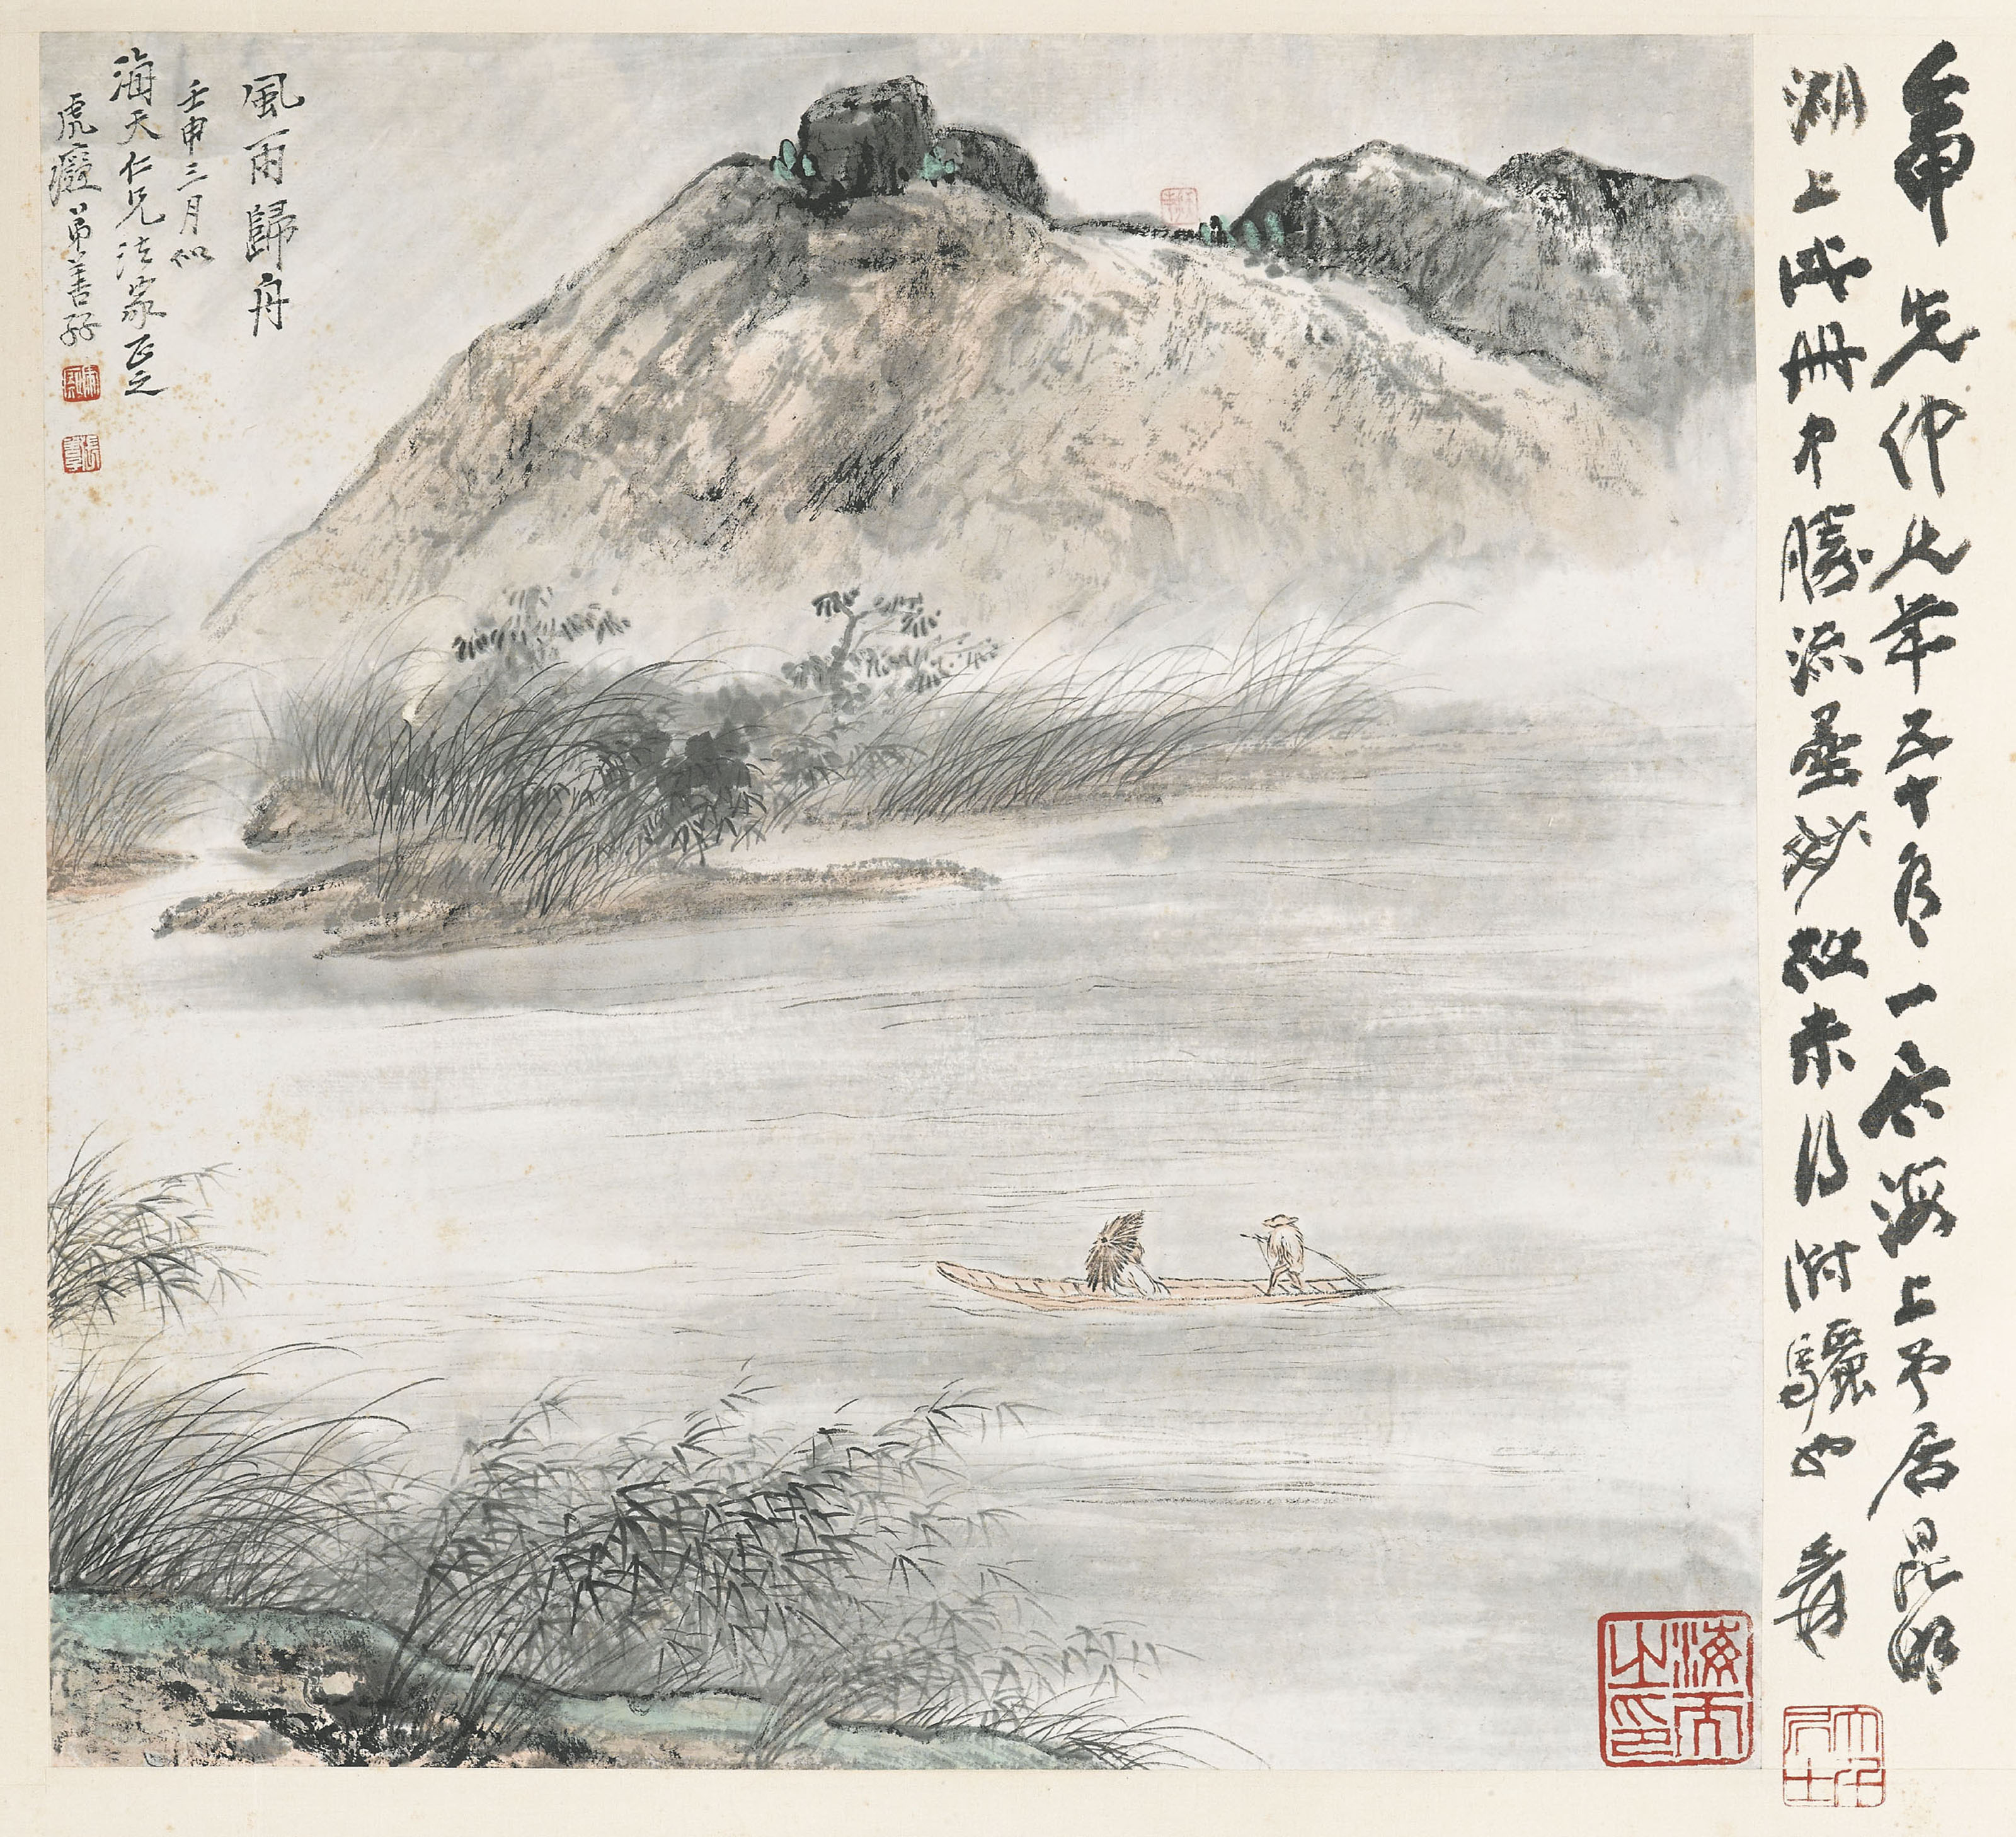 Landscapes and Calligraphy